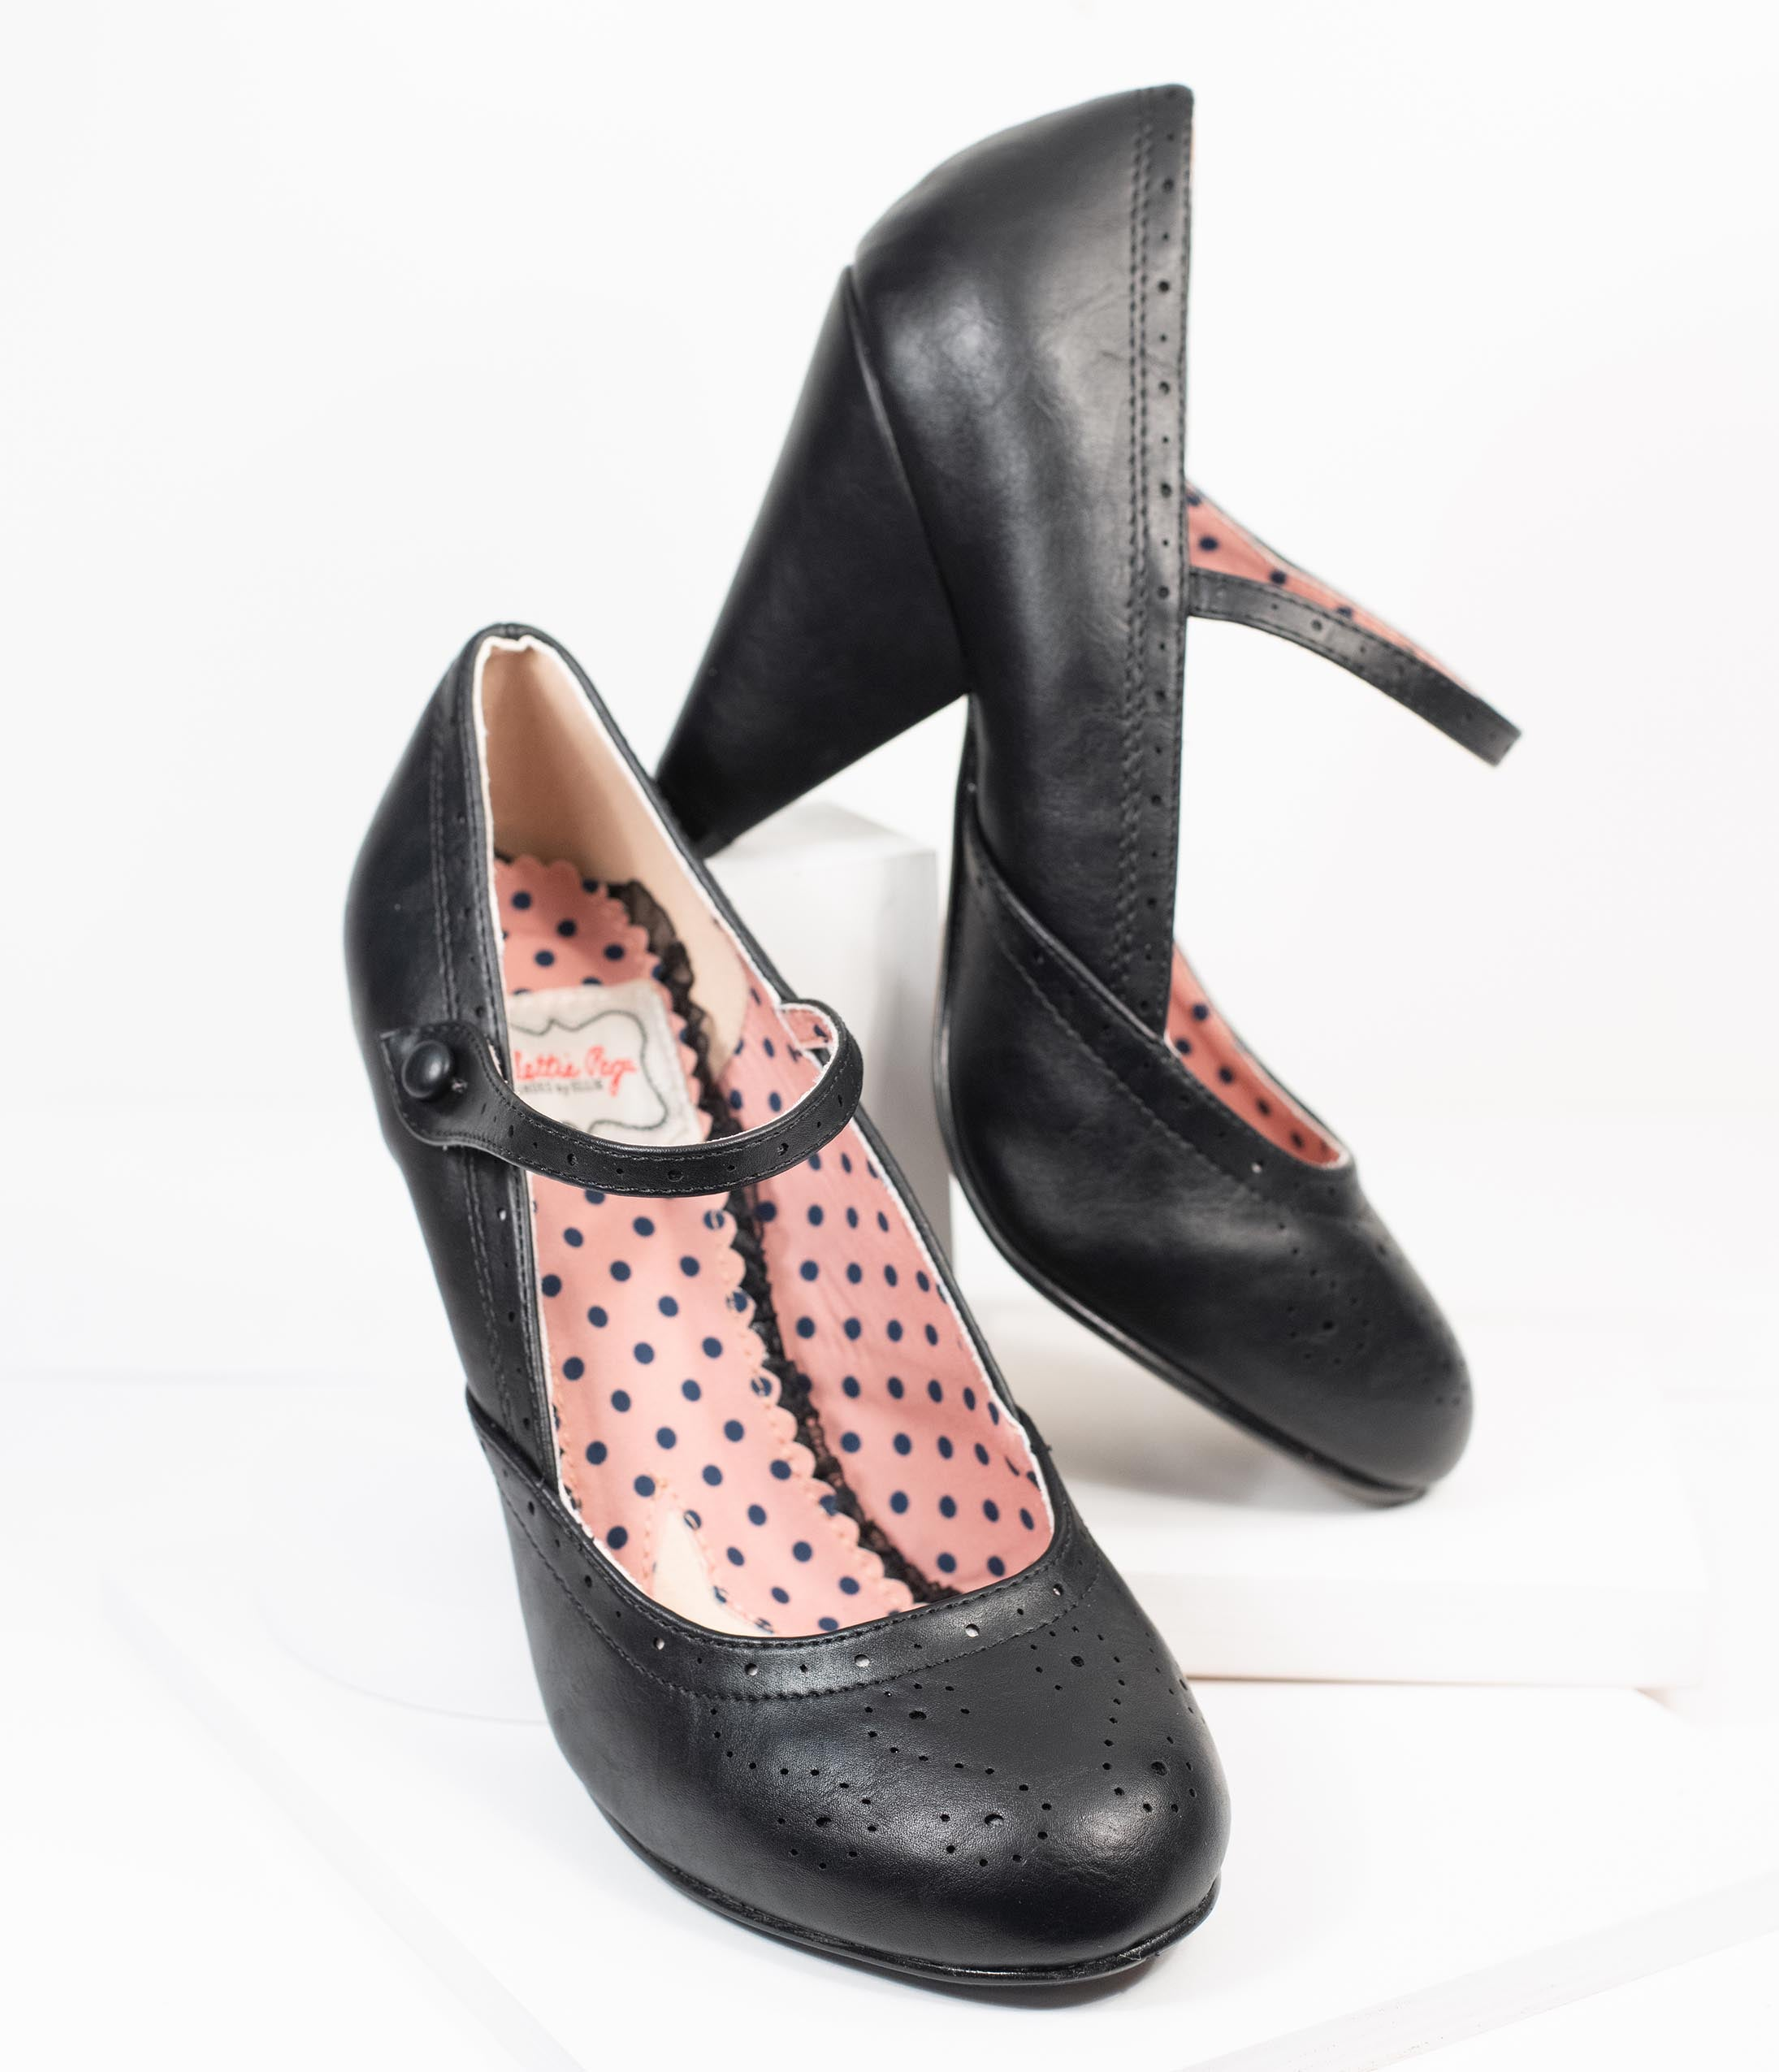 Vintage Heels, Retro Heels, Pumps, Shoes Bettie Page 1950S Black Leatherette Elanor Heels $82.00 AT vintagedancer.com